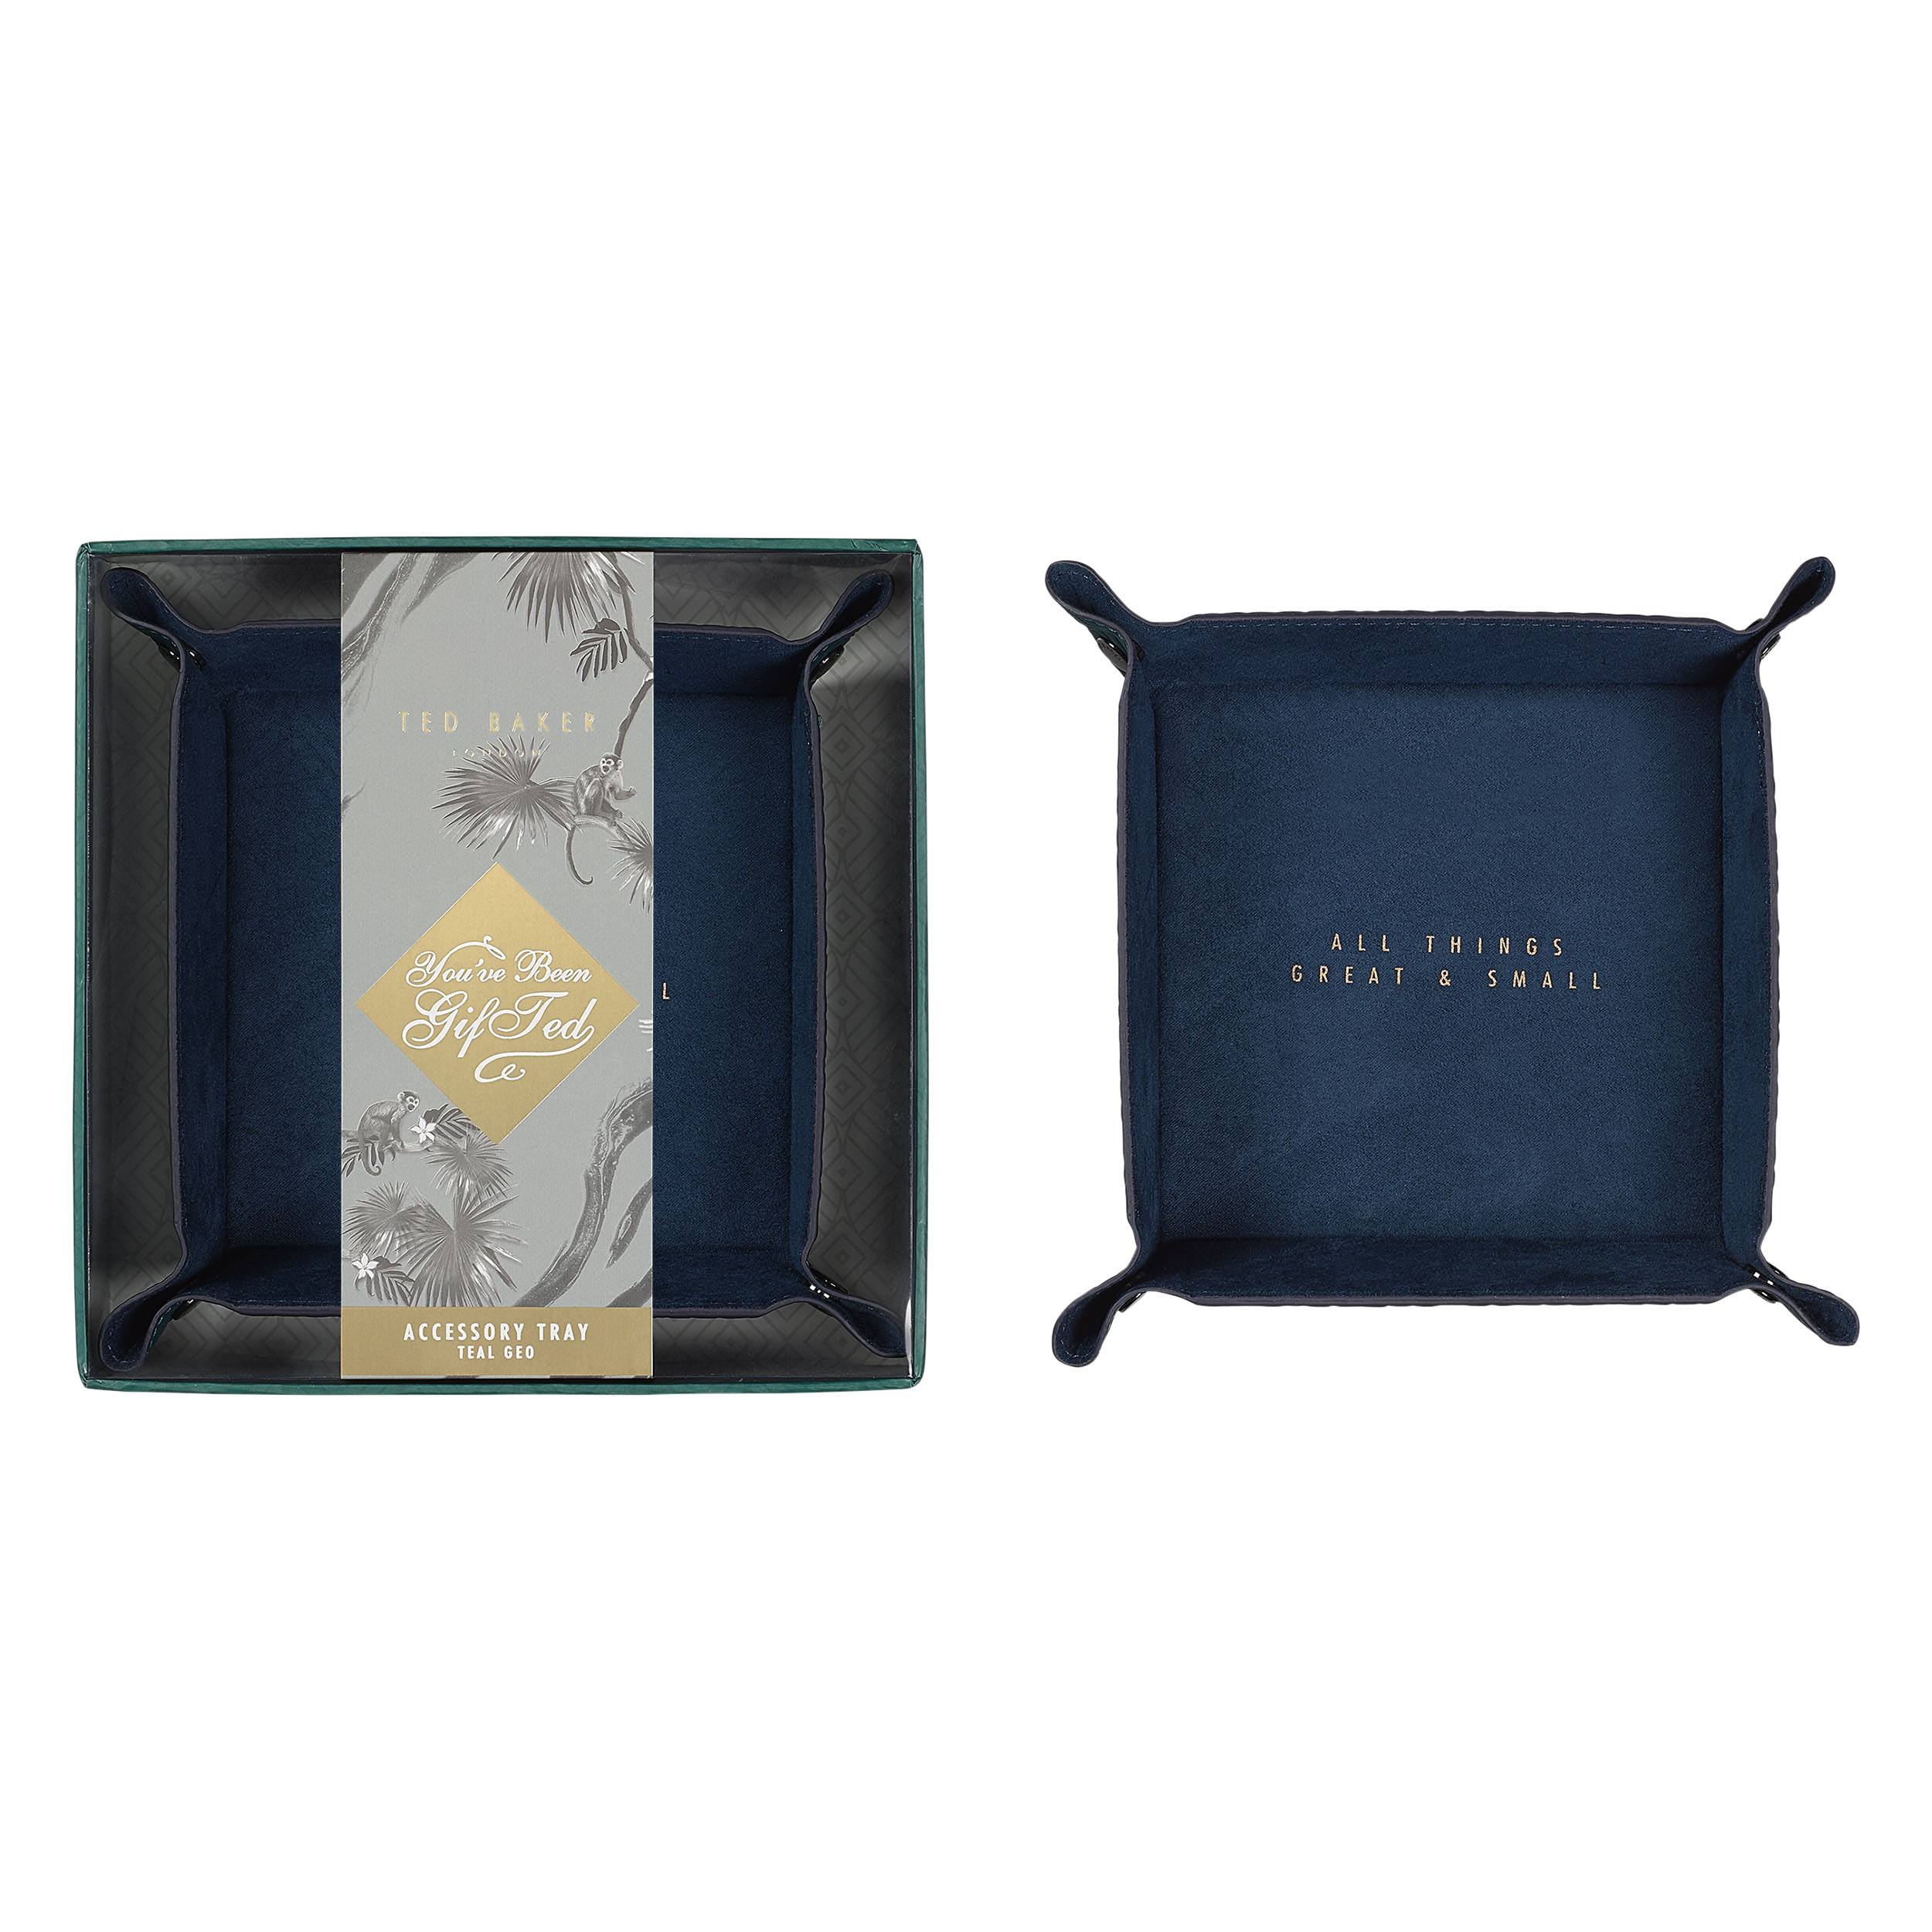 Accessory Tray, Teal